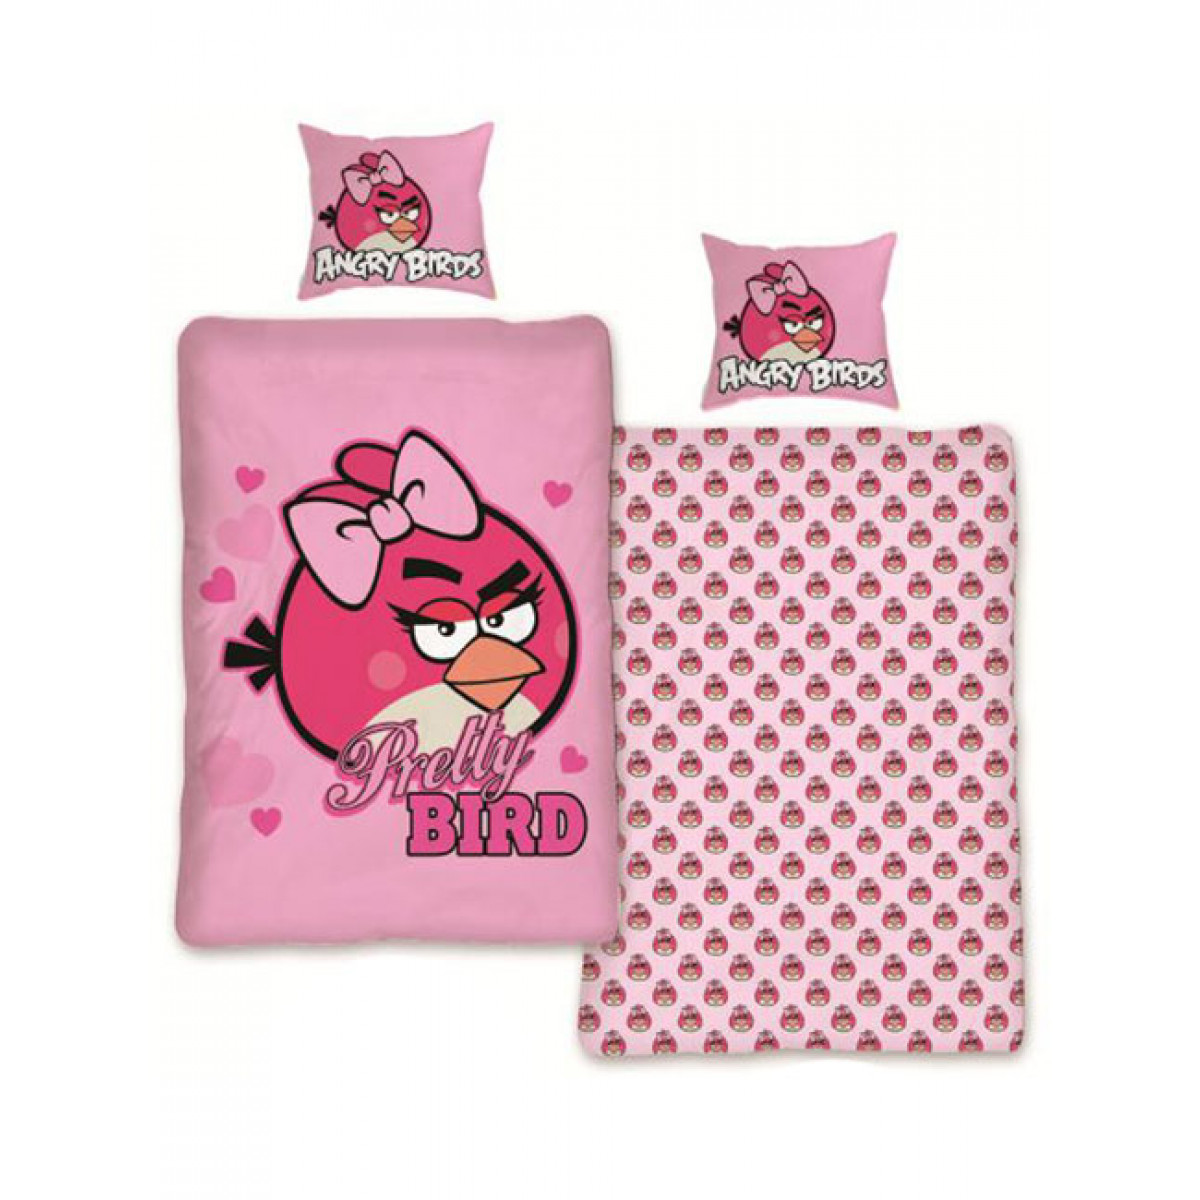 Angry Birds Pink Duvet Cover And Pillowcase Set Pretty Bird